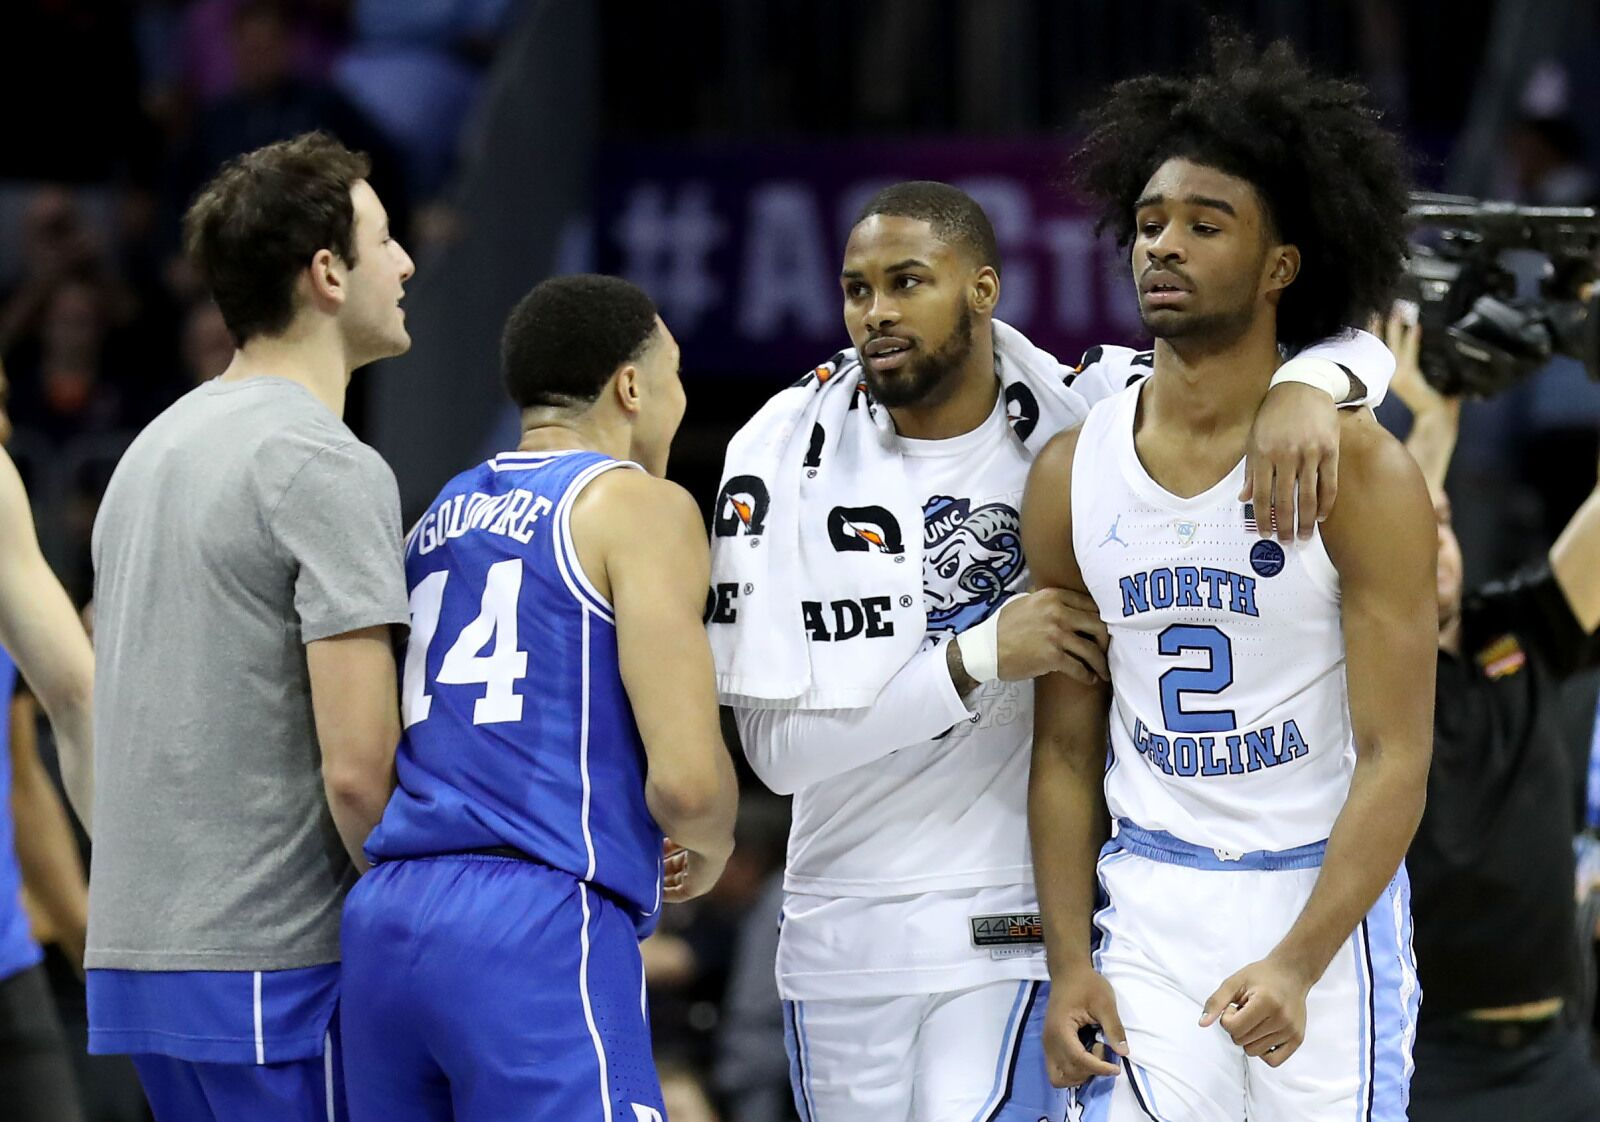 UNC Basketball: Tar Heels fall to a 2-seed in Bracketology